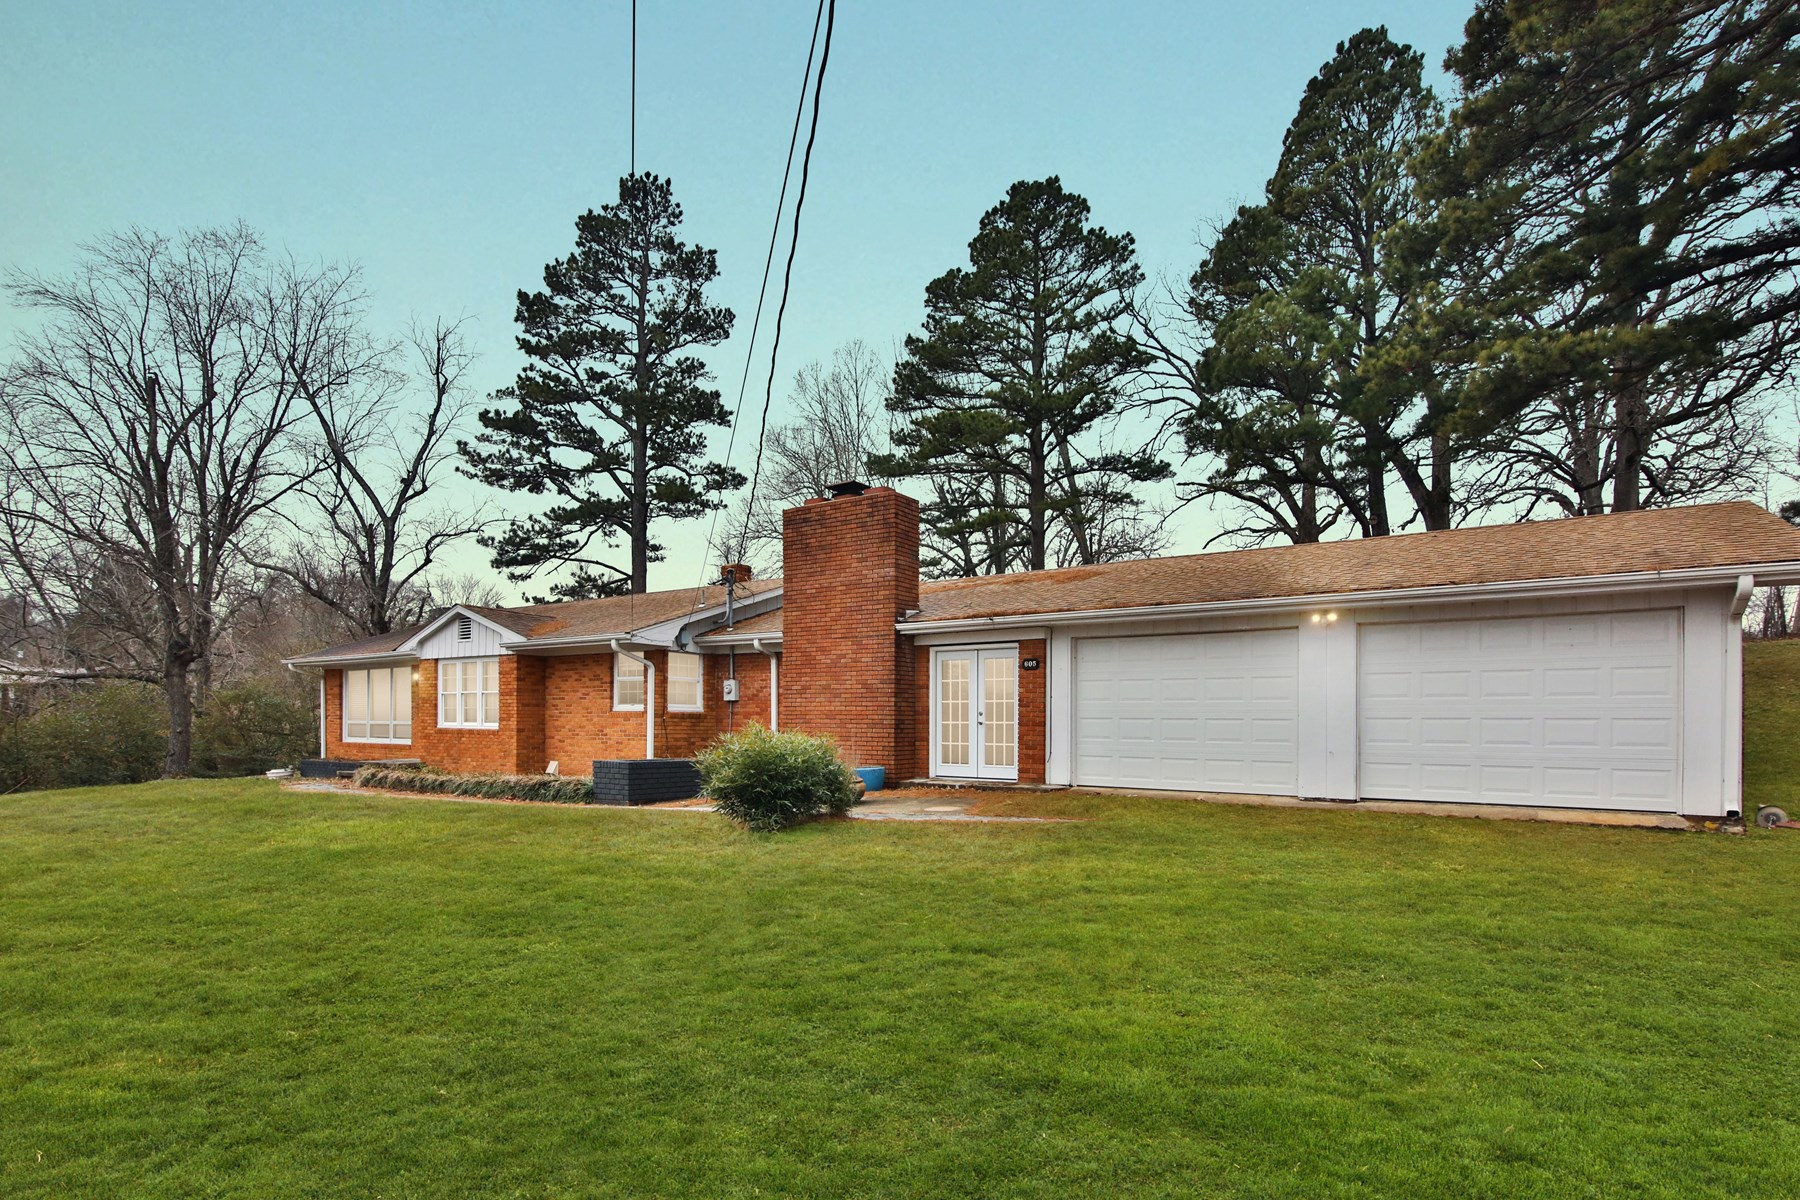 Home for Sale In Thayer MO with Guest House